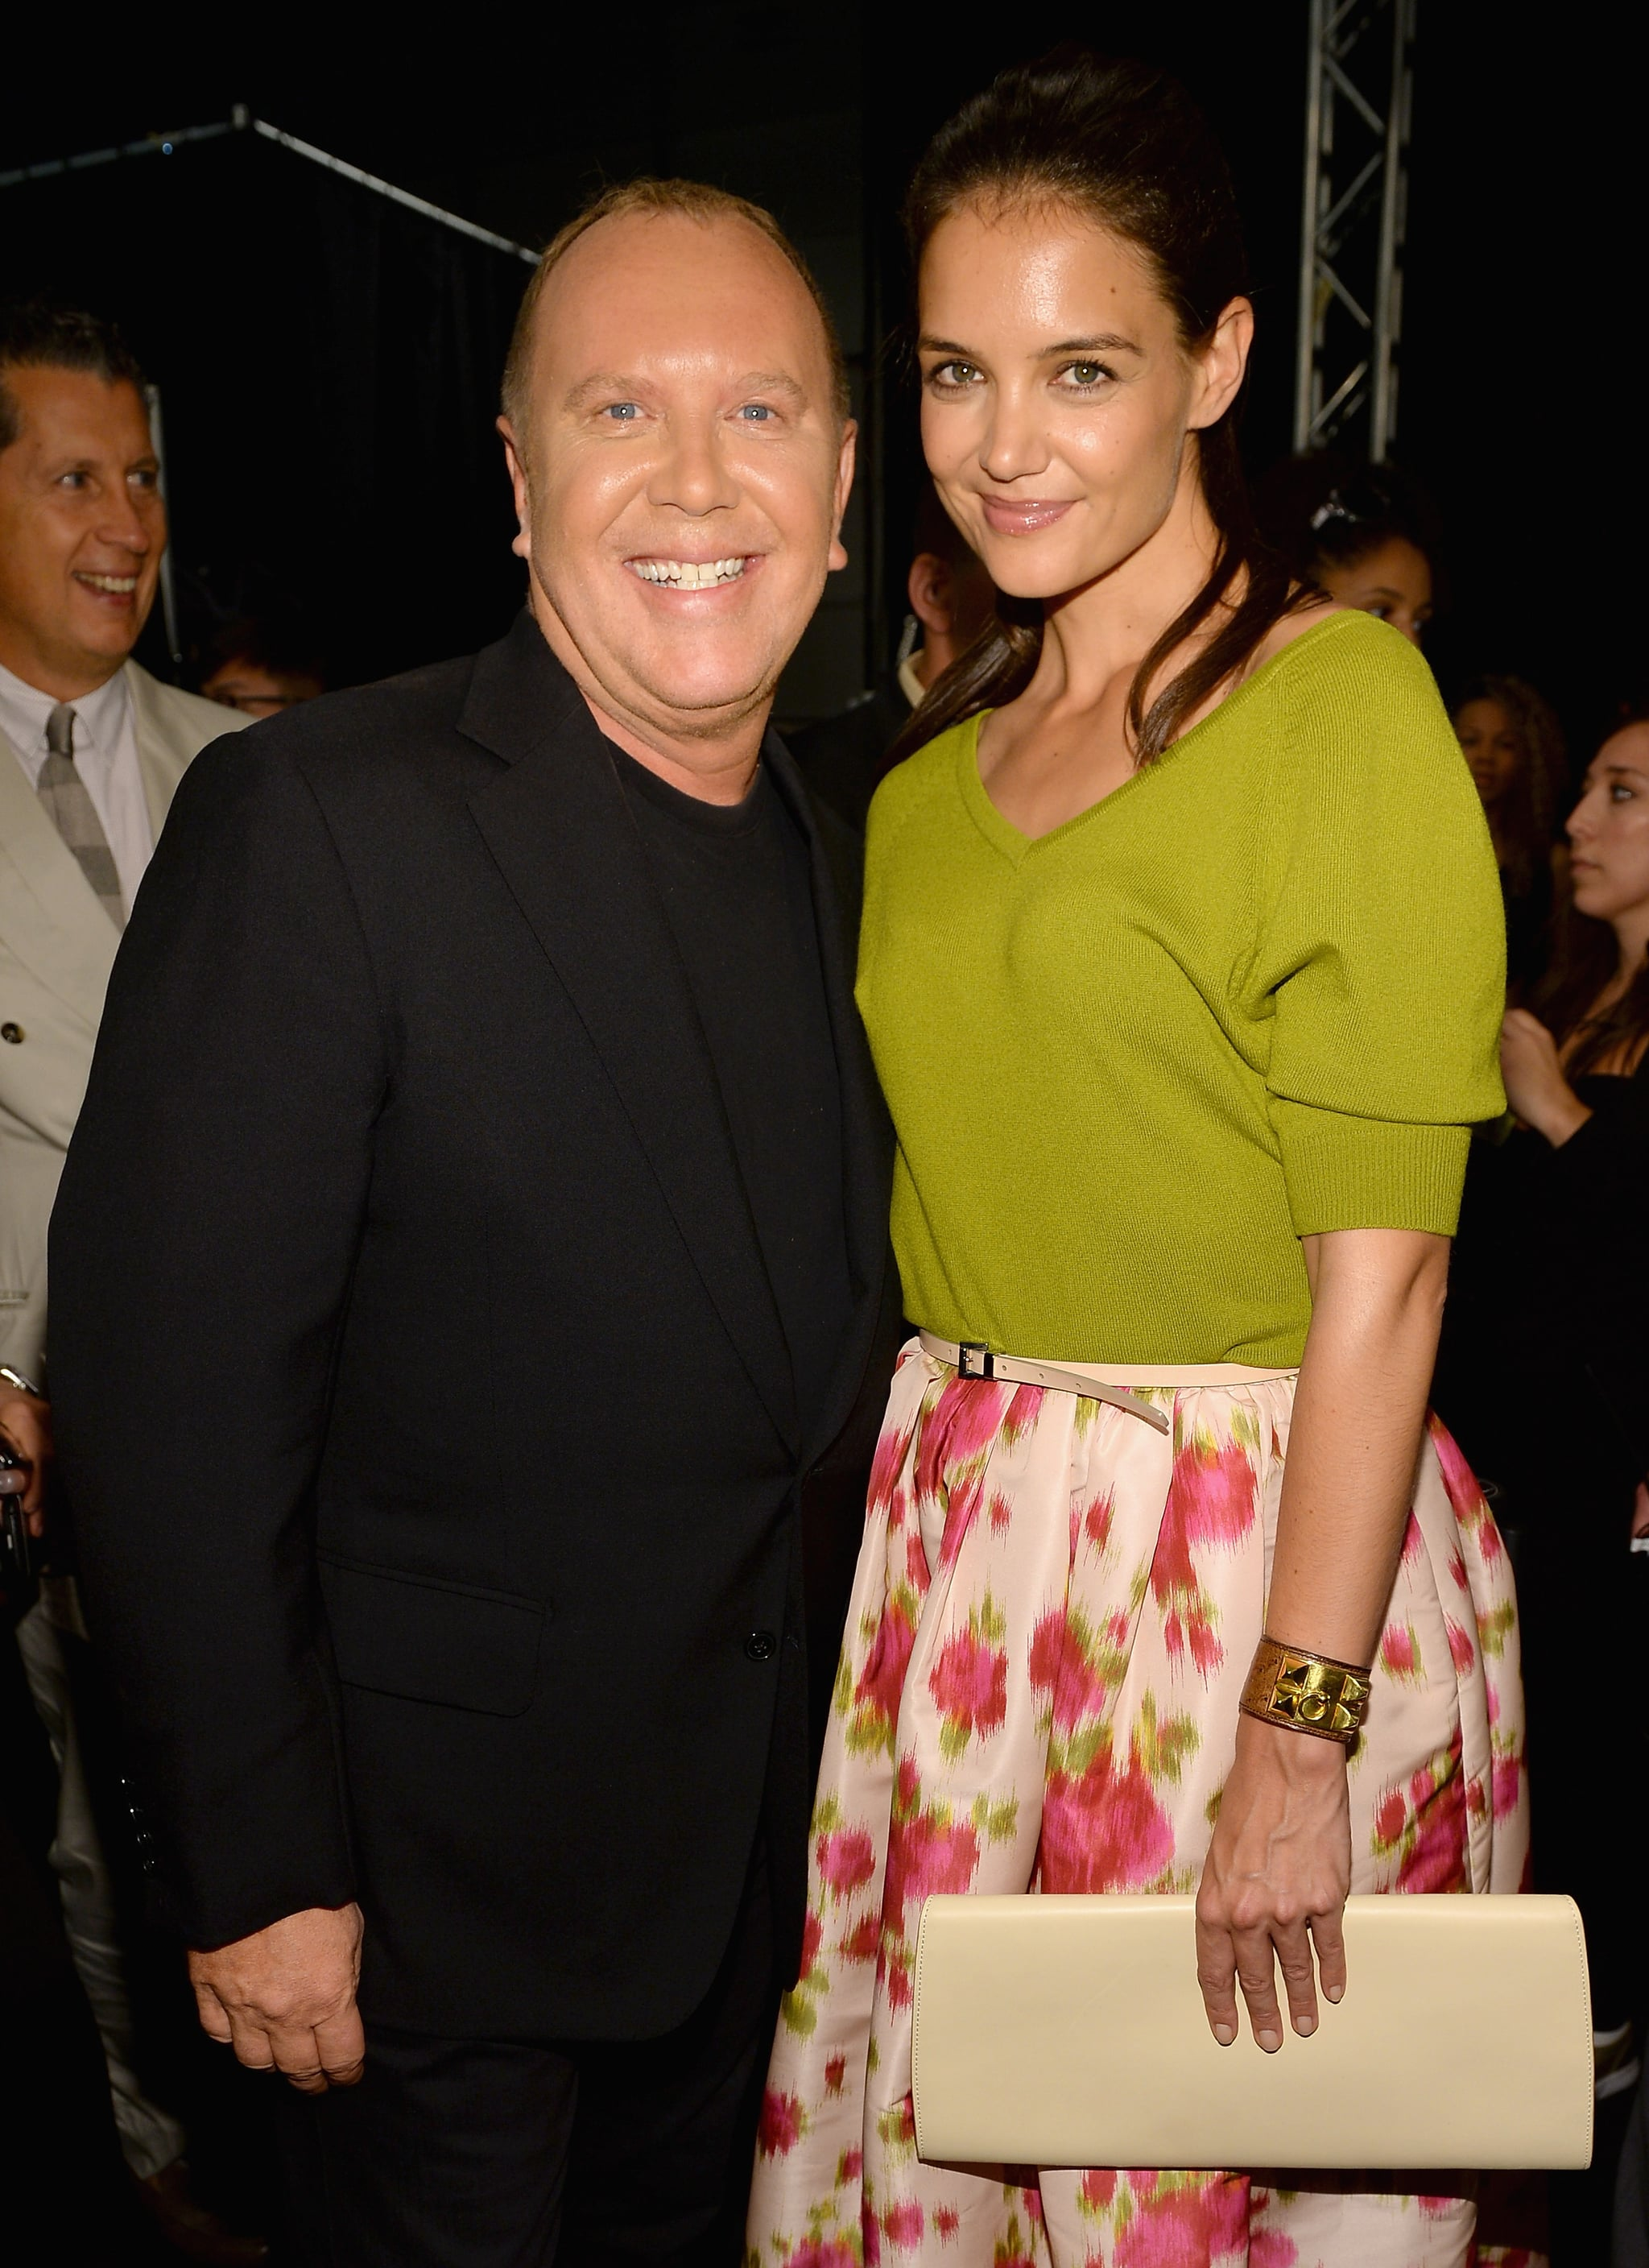 Katie Holmes posed backstage with designer Michael Kors.